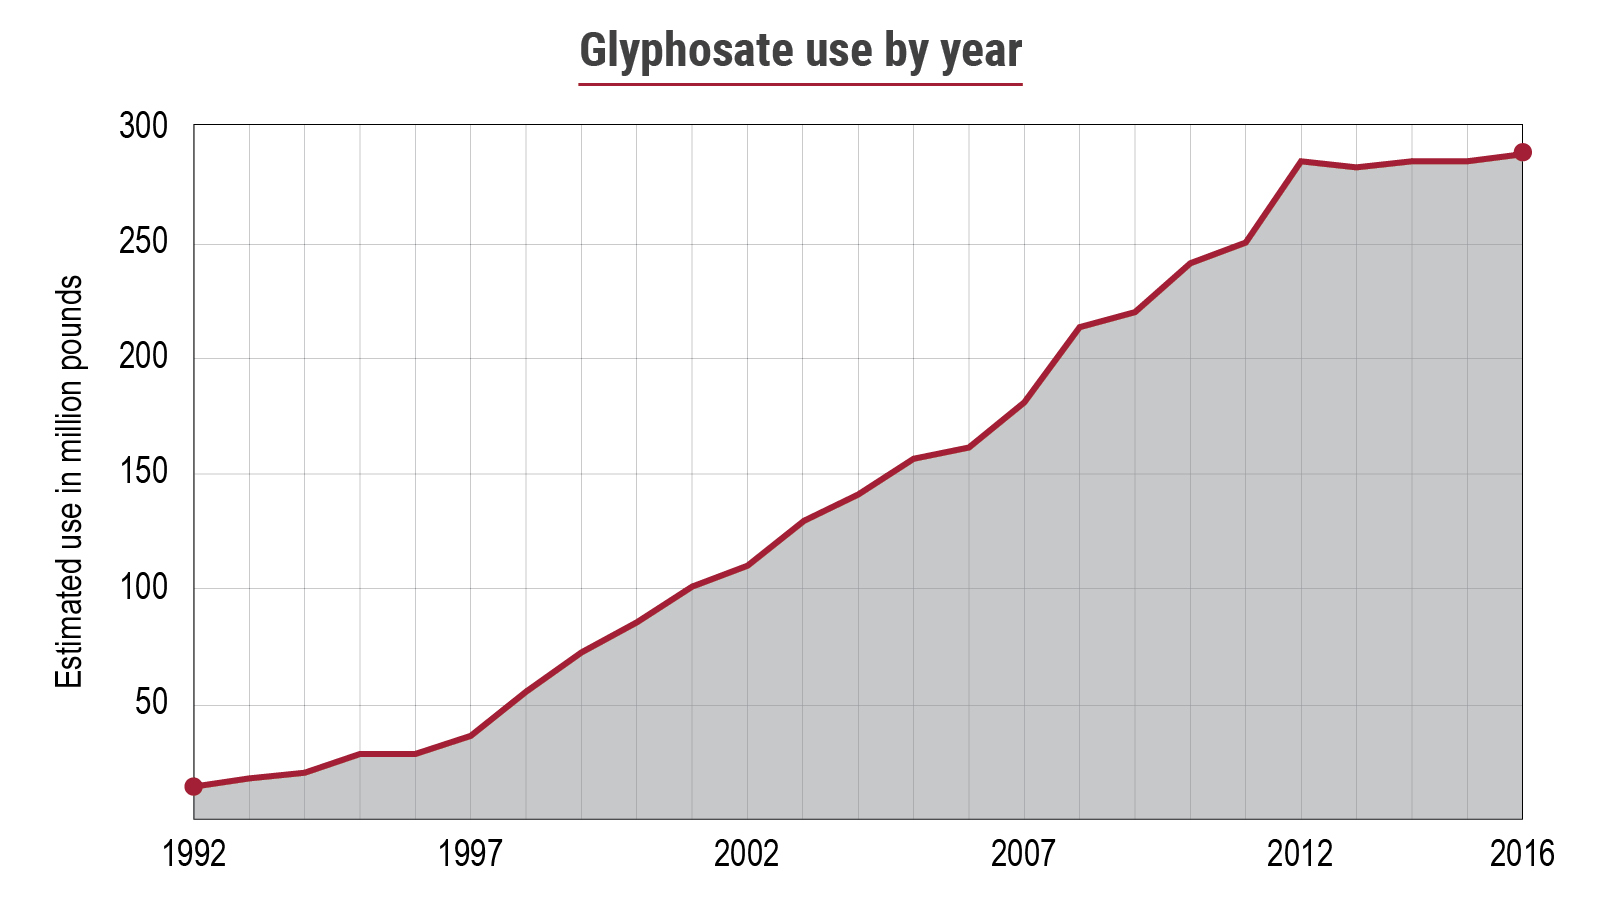 Glyphosate use by year